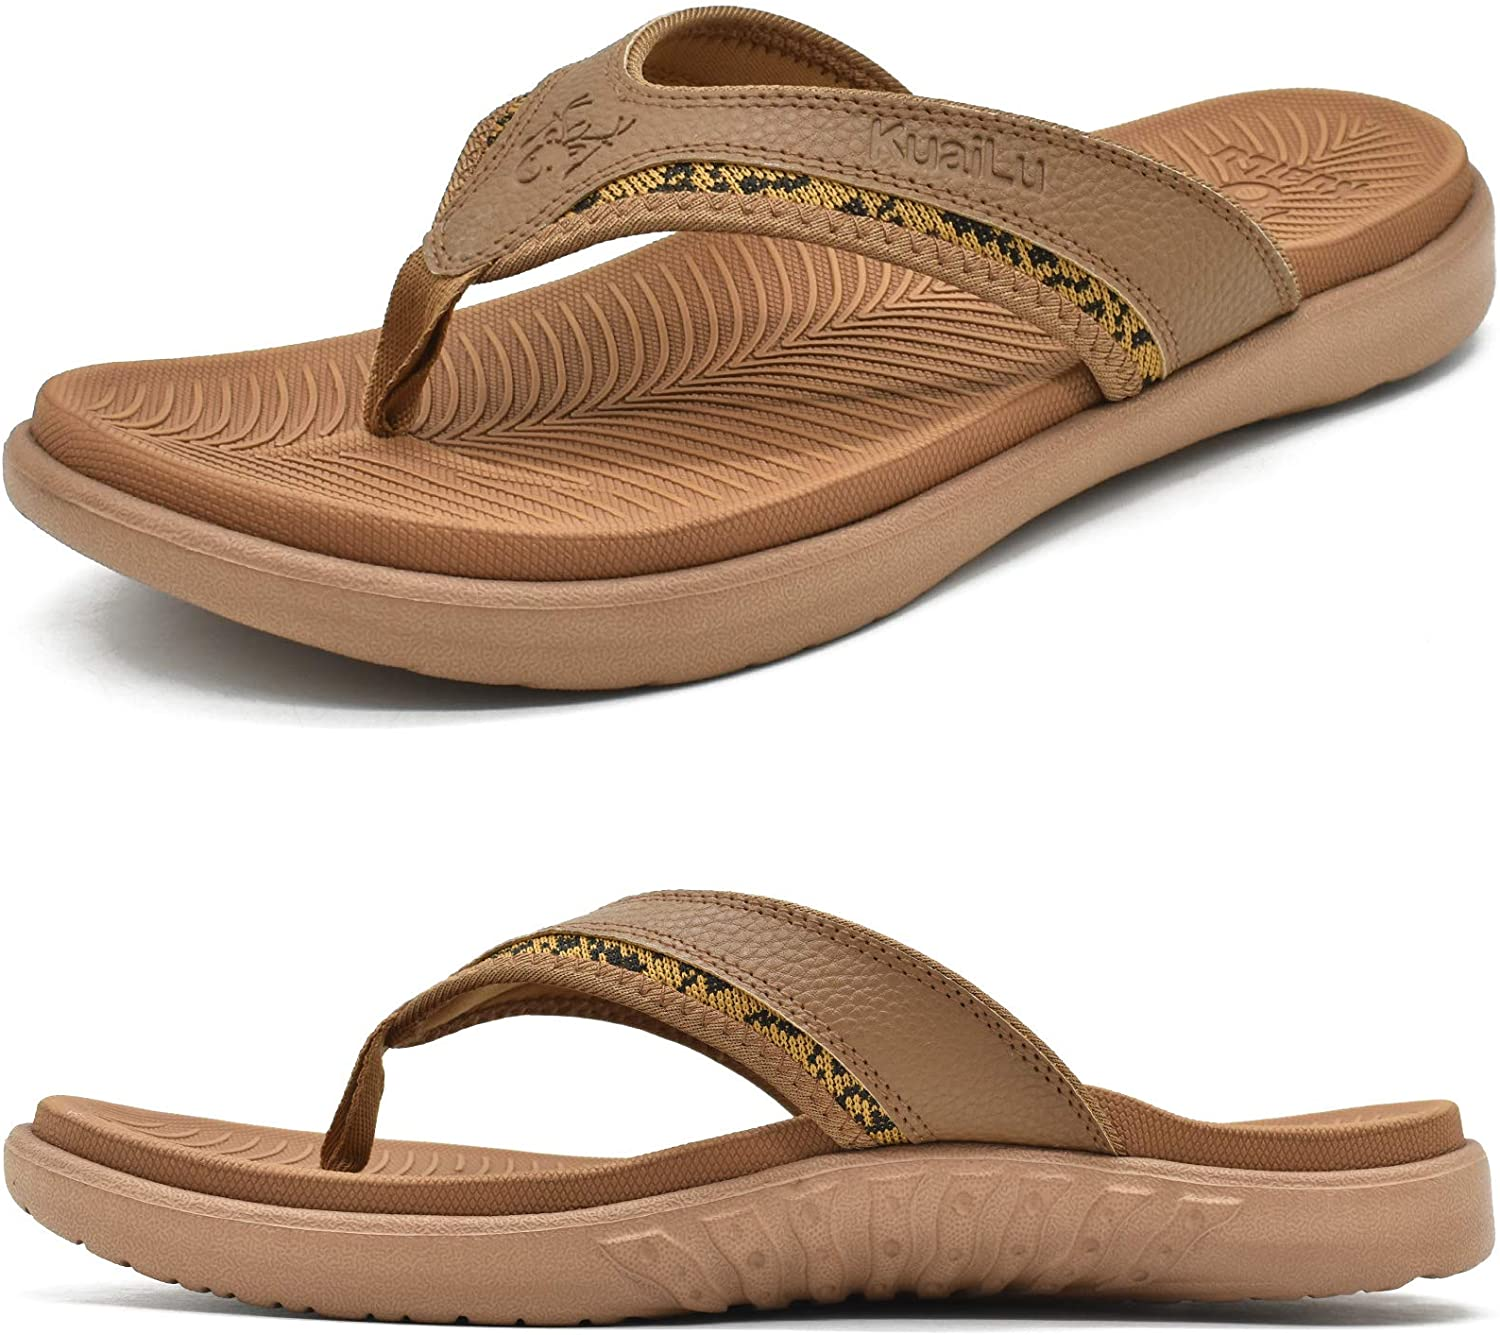 KuaiLu Mens Leather Sport Flip Flops Comfort Orthotic Thong Sandals with Plantar Fasciitis Arch Support for Outdoor Summer Size 7~13